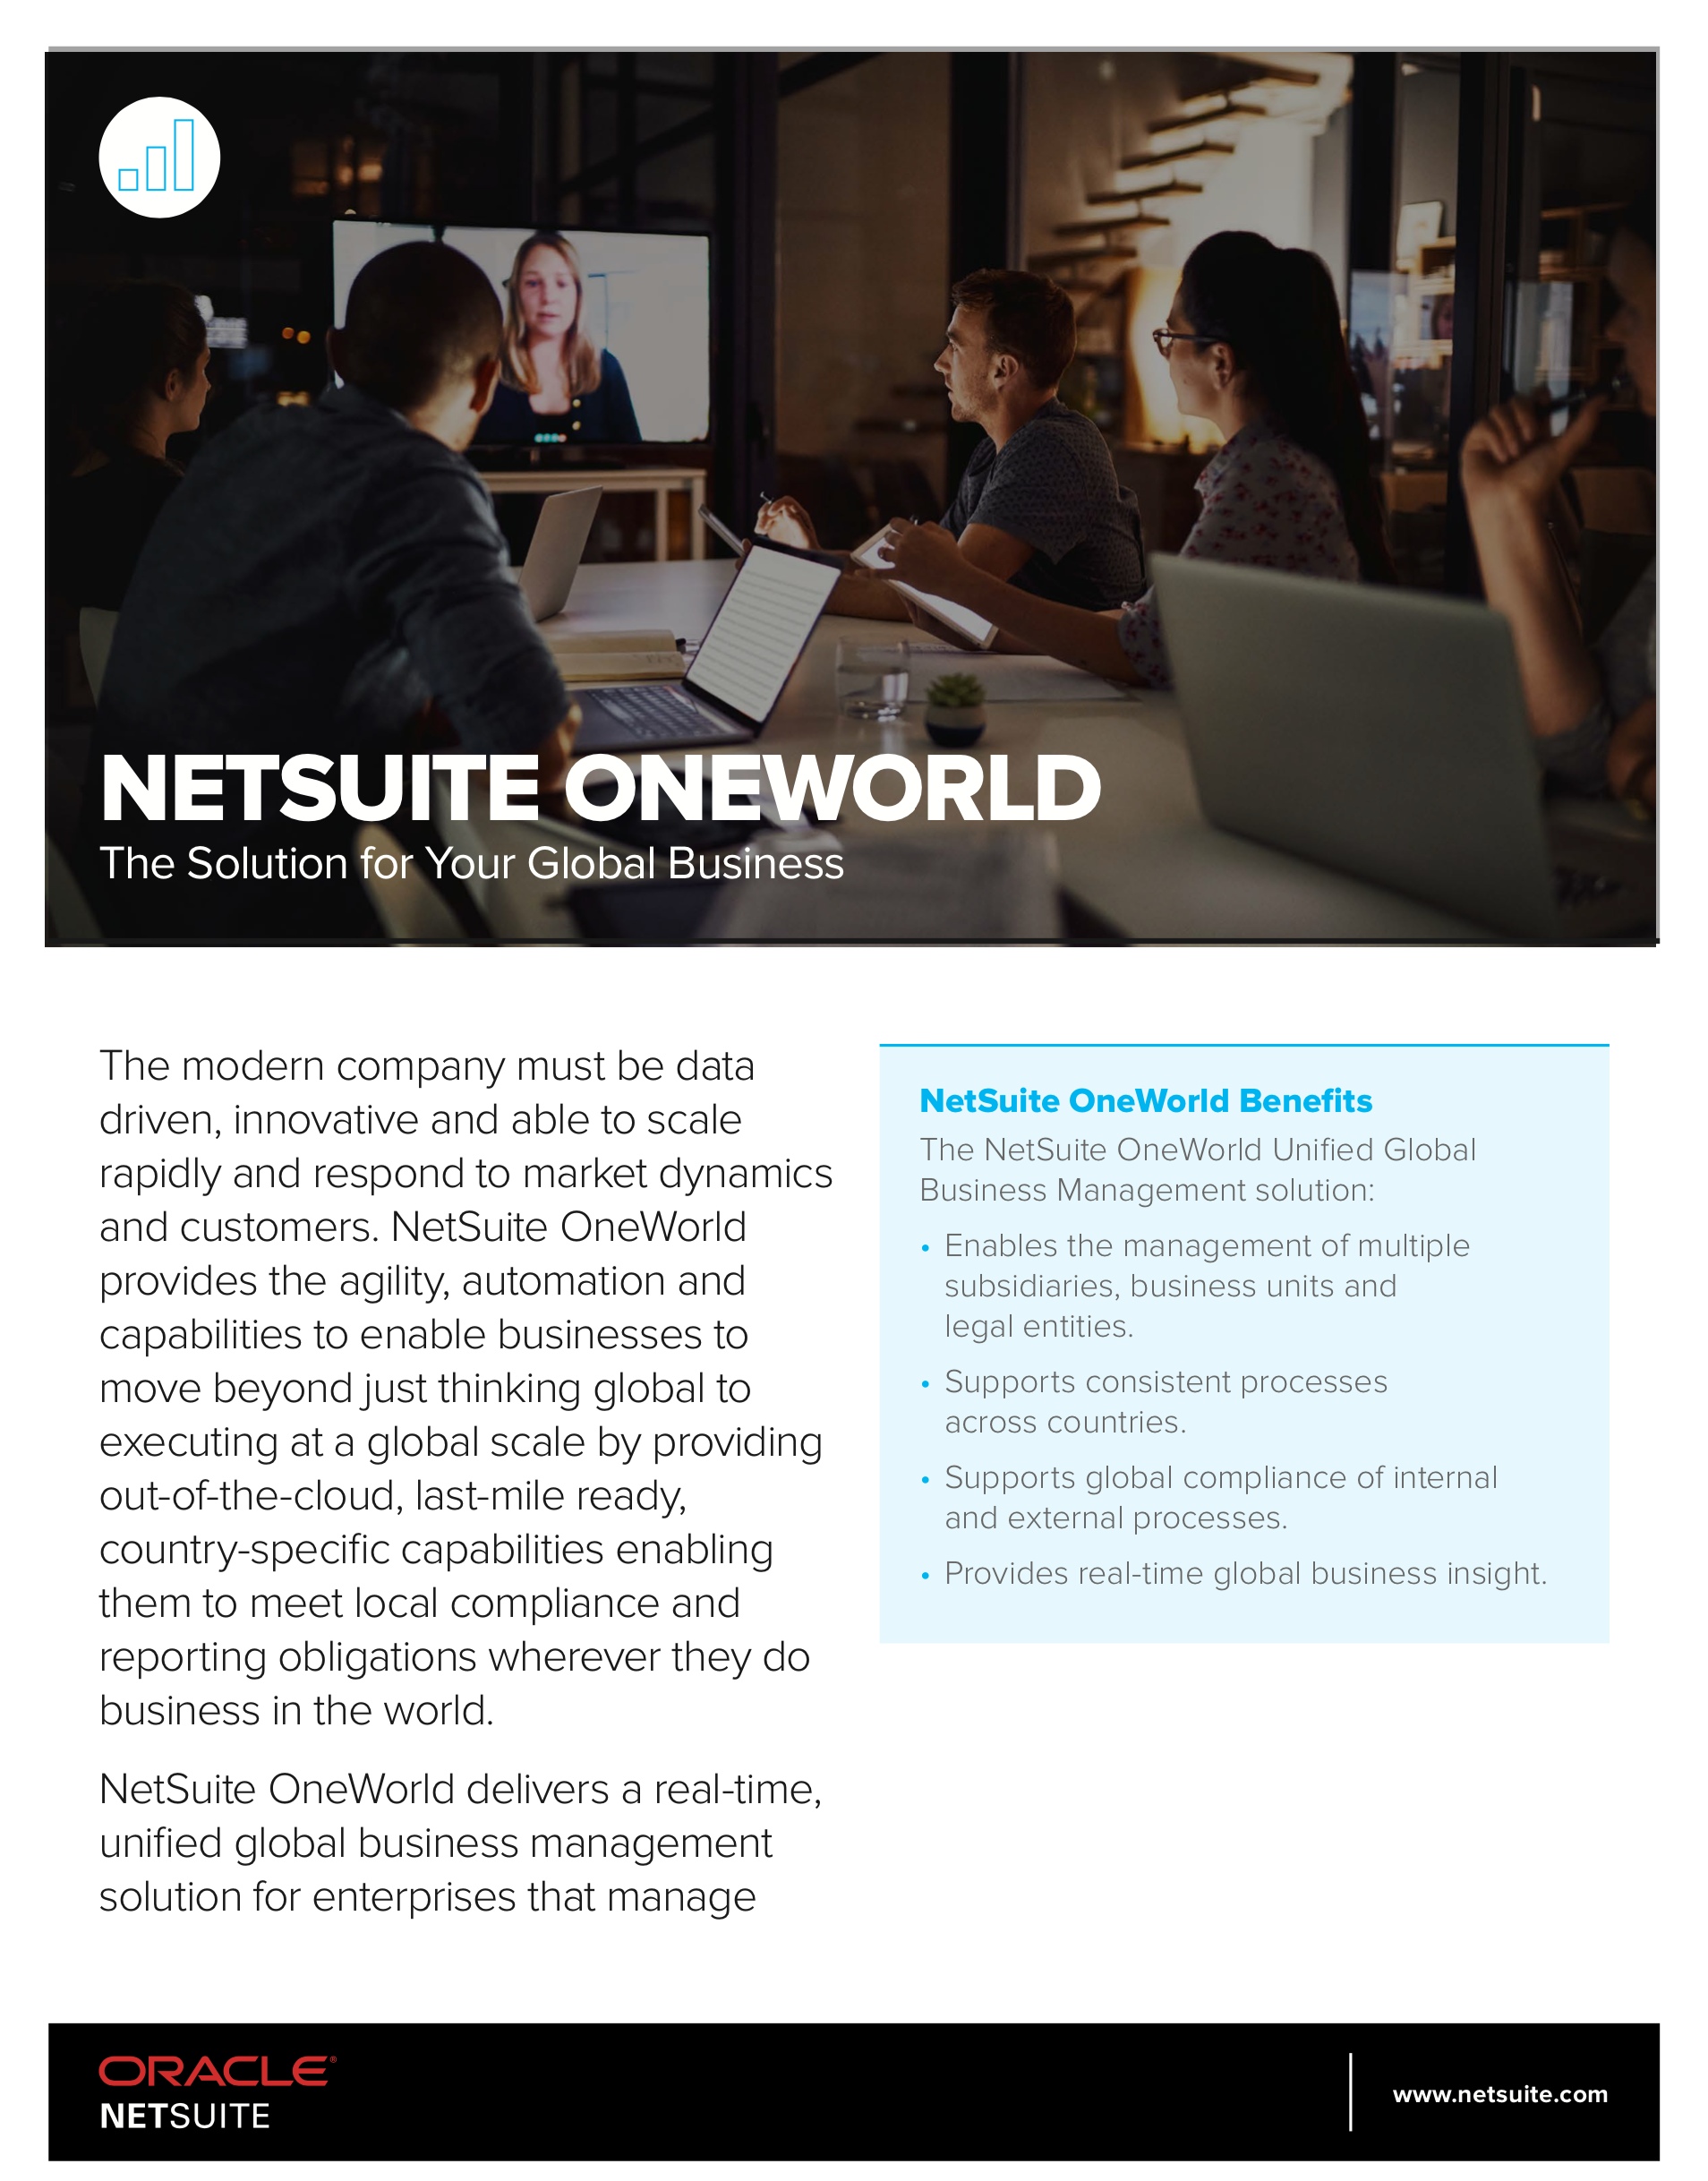 NETSUITE ONEWORLD The Solution for Your Global Business